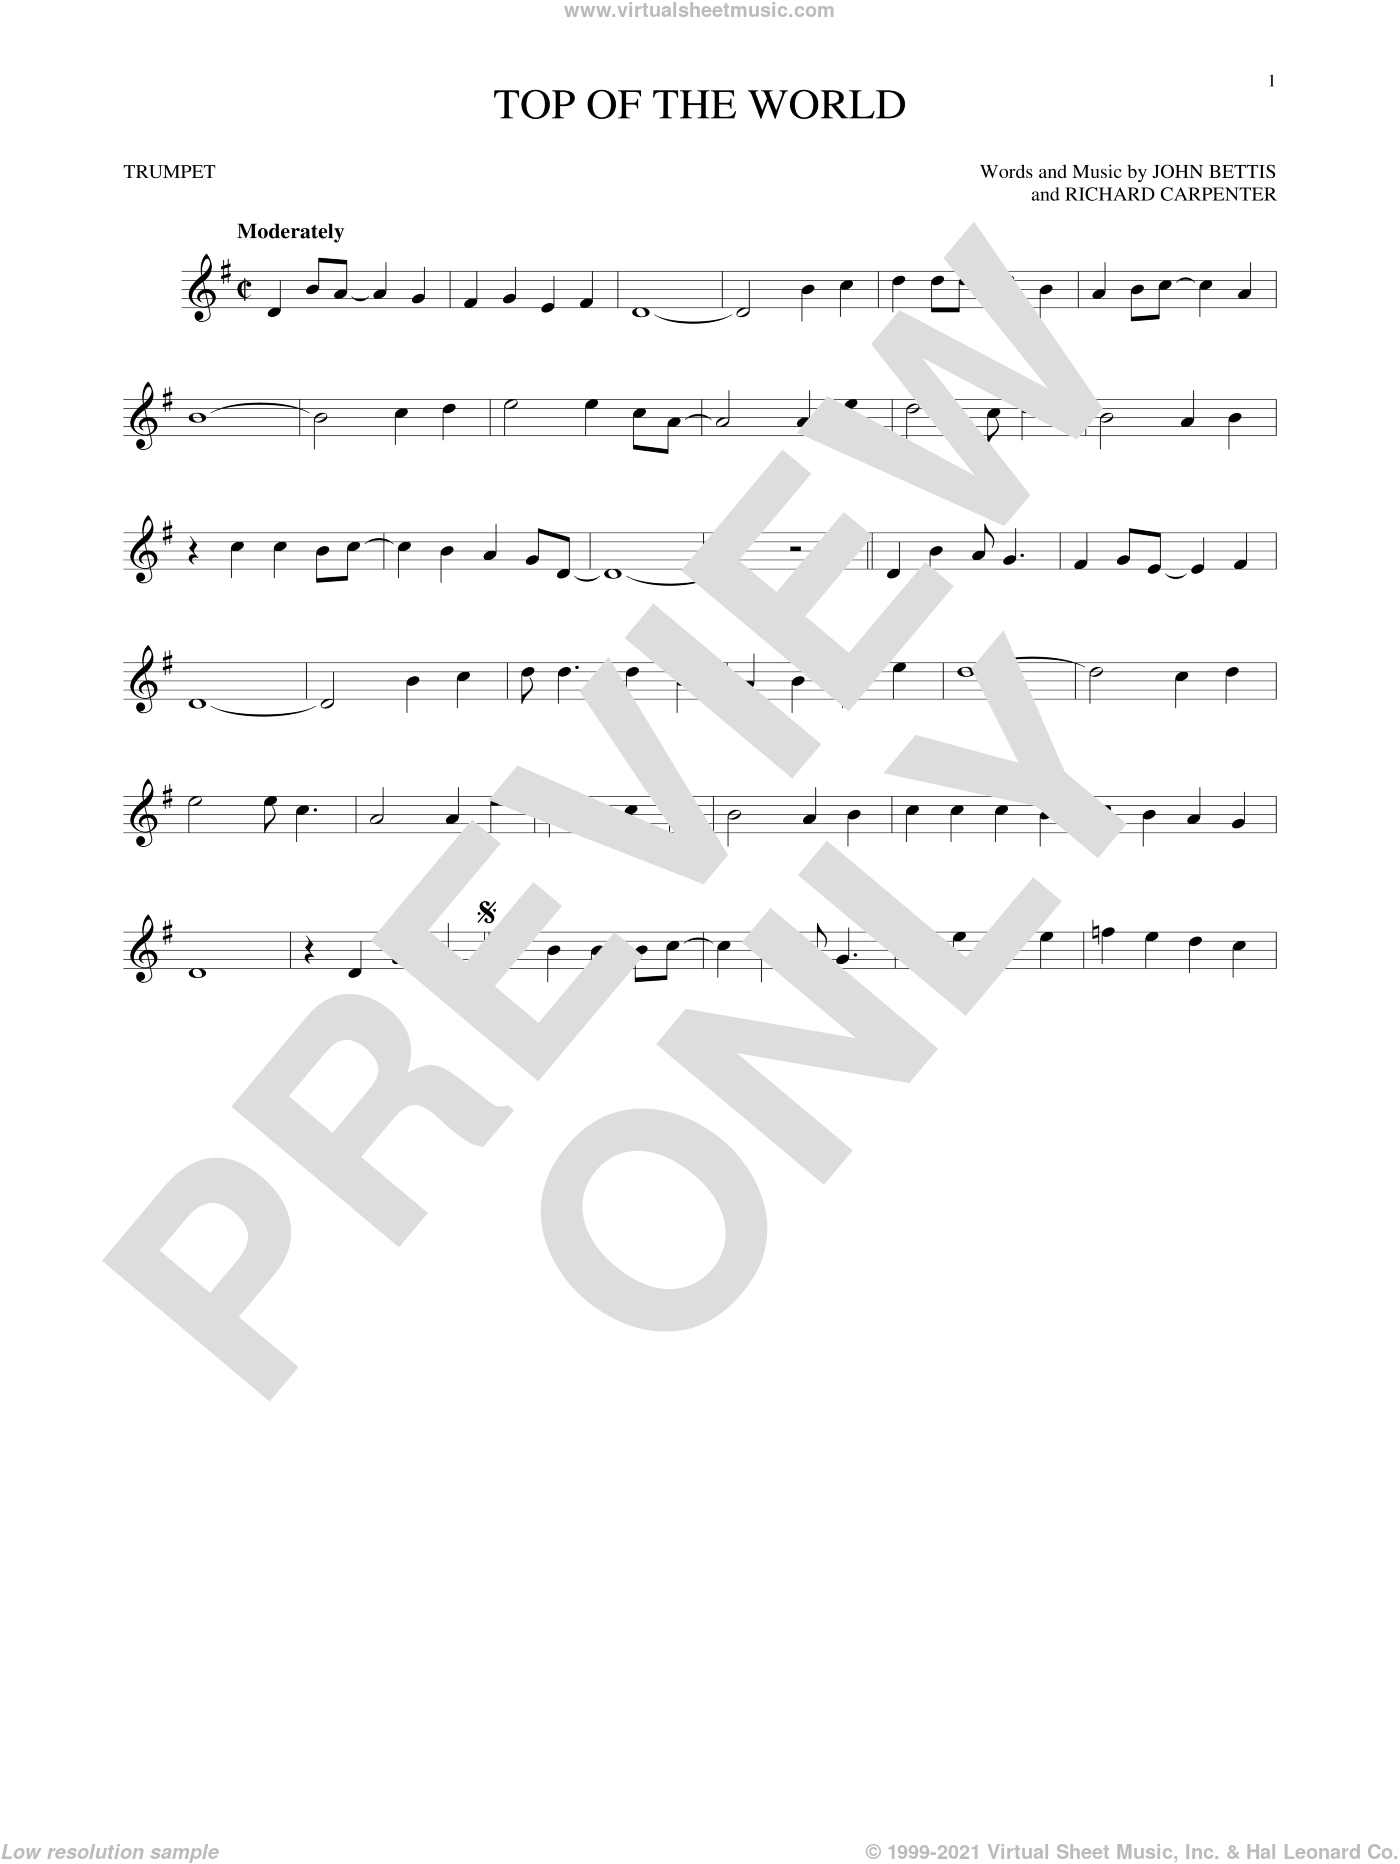 Top Of The World sheet music for trumpet solo by John Bettis, Carpenters and Richard Carpenter, intermediate skill level